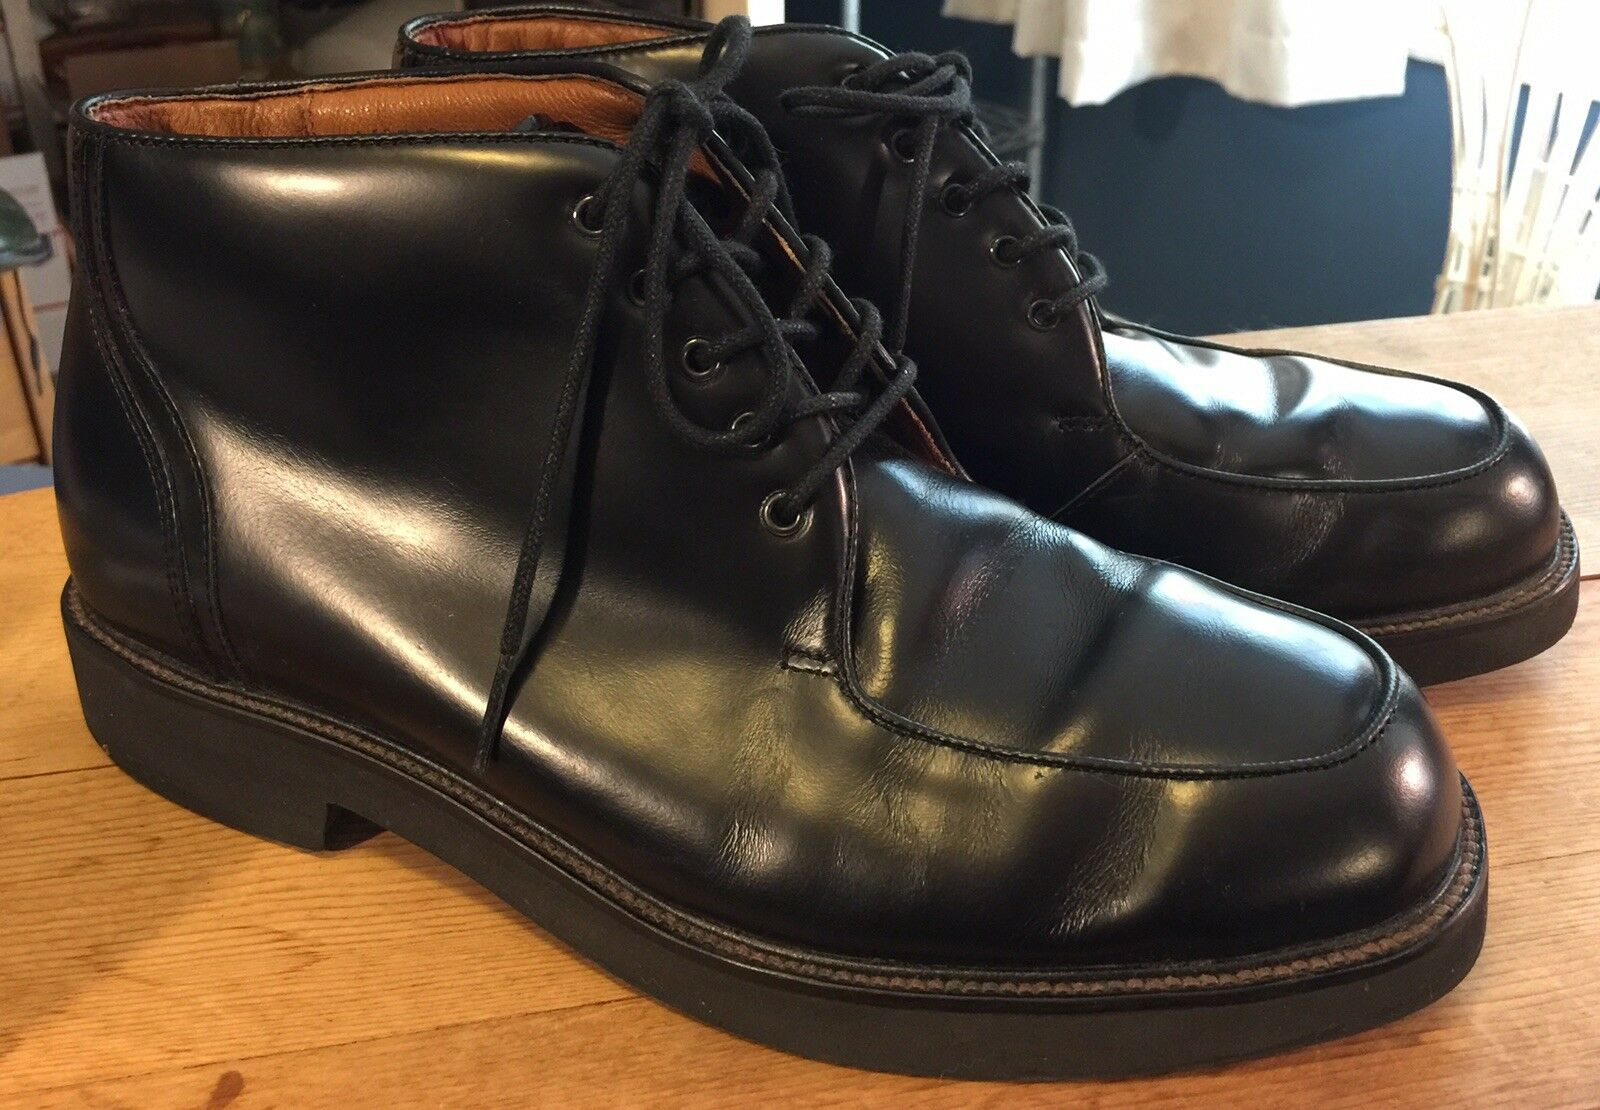 Mens Rockport Ankle High Boots shoes Black Size 8 Wide M2758 Leather Uppers